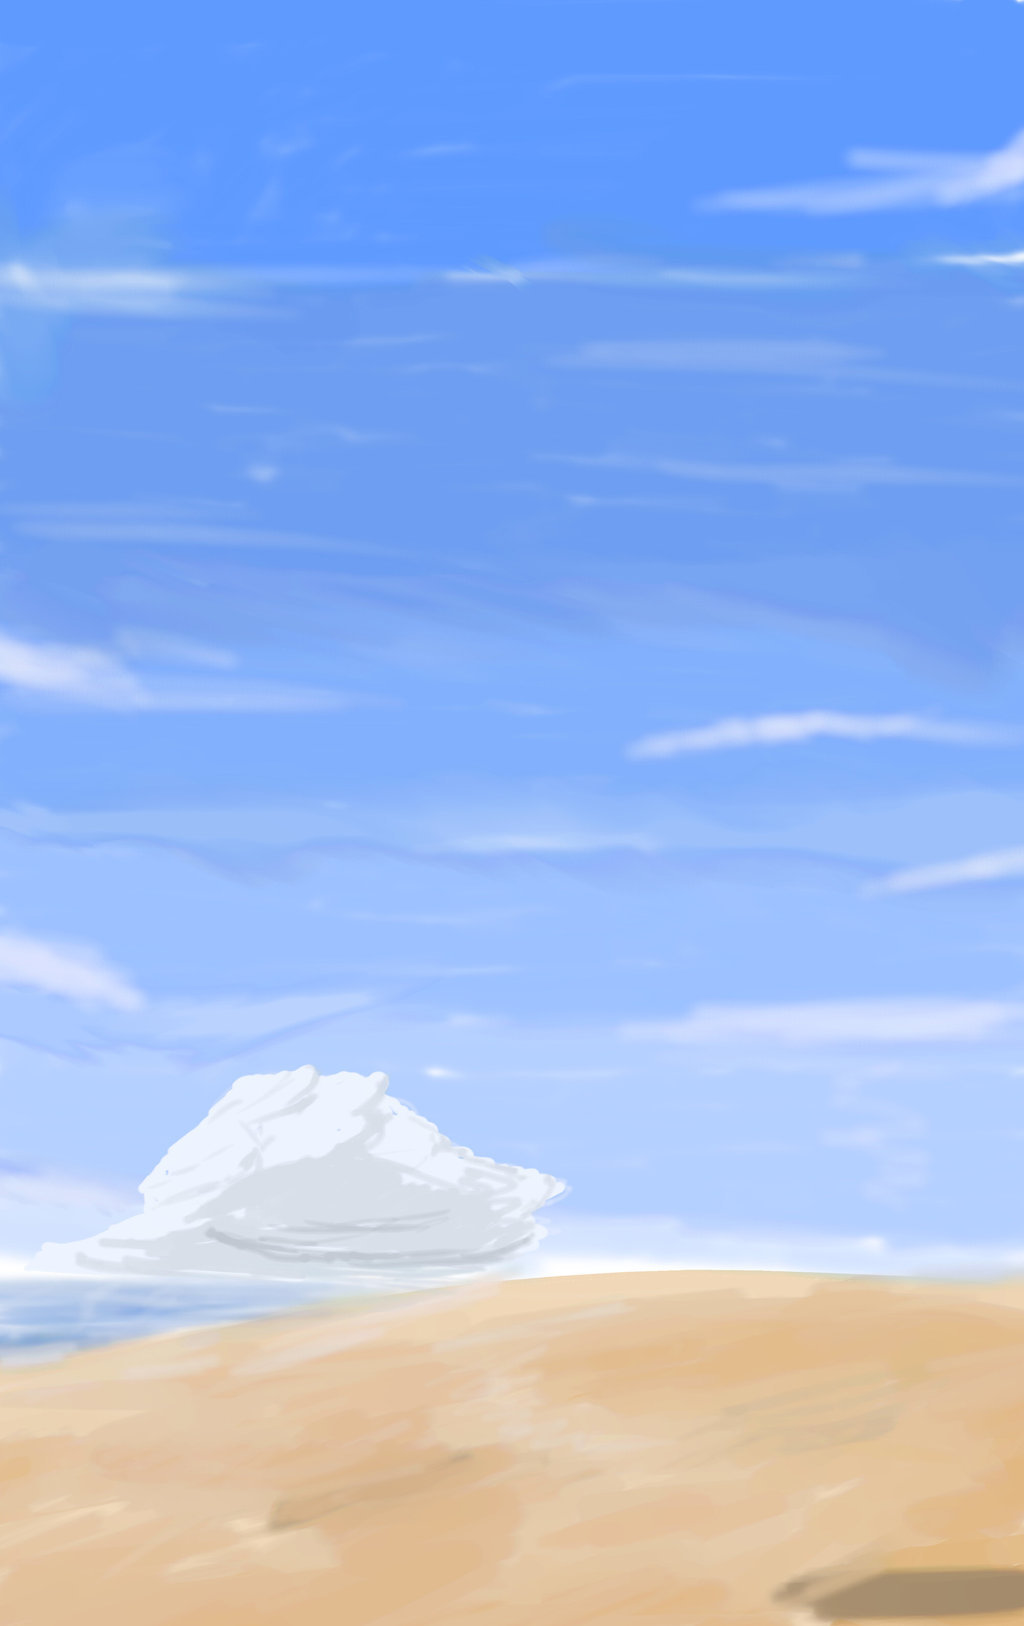 Another Anime Beach Background by wbd on DeviantArt